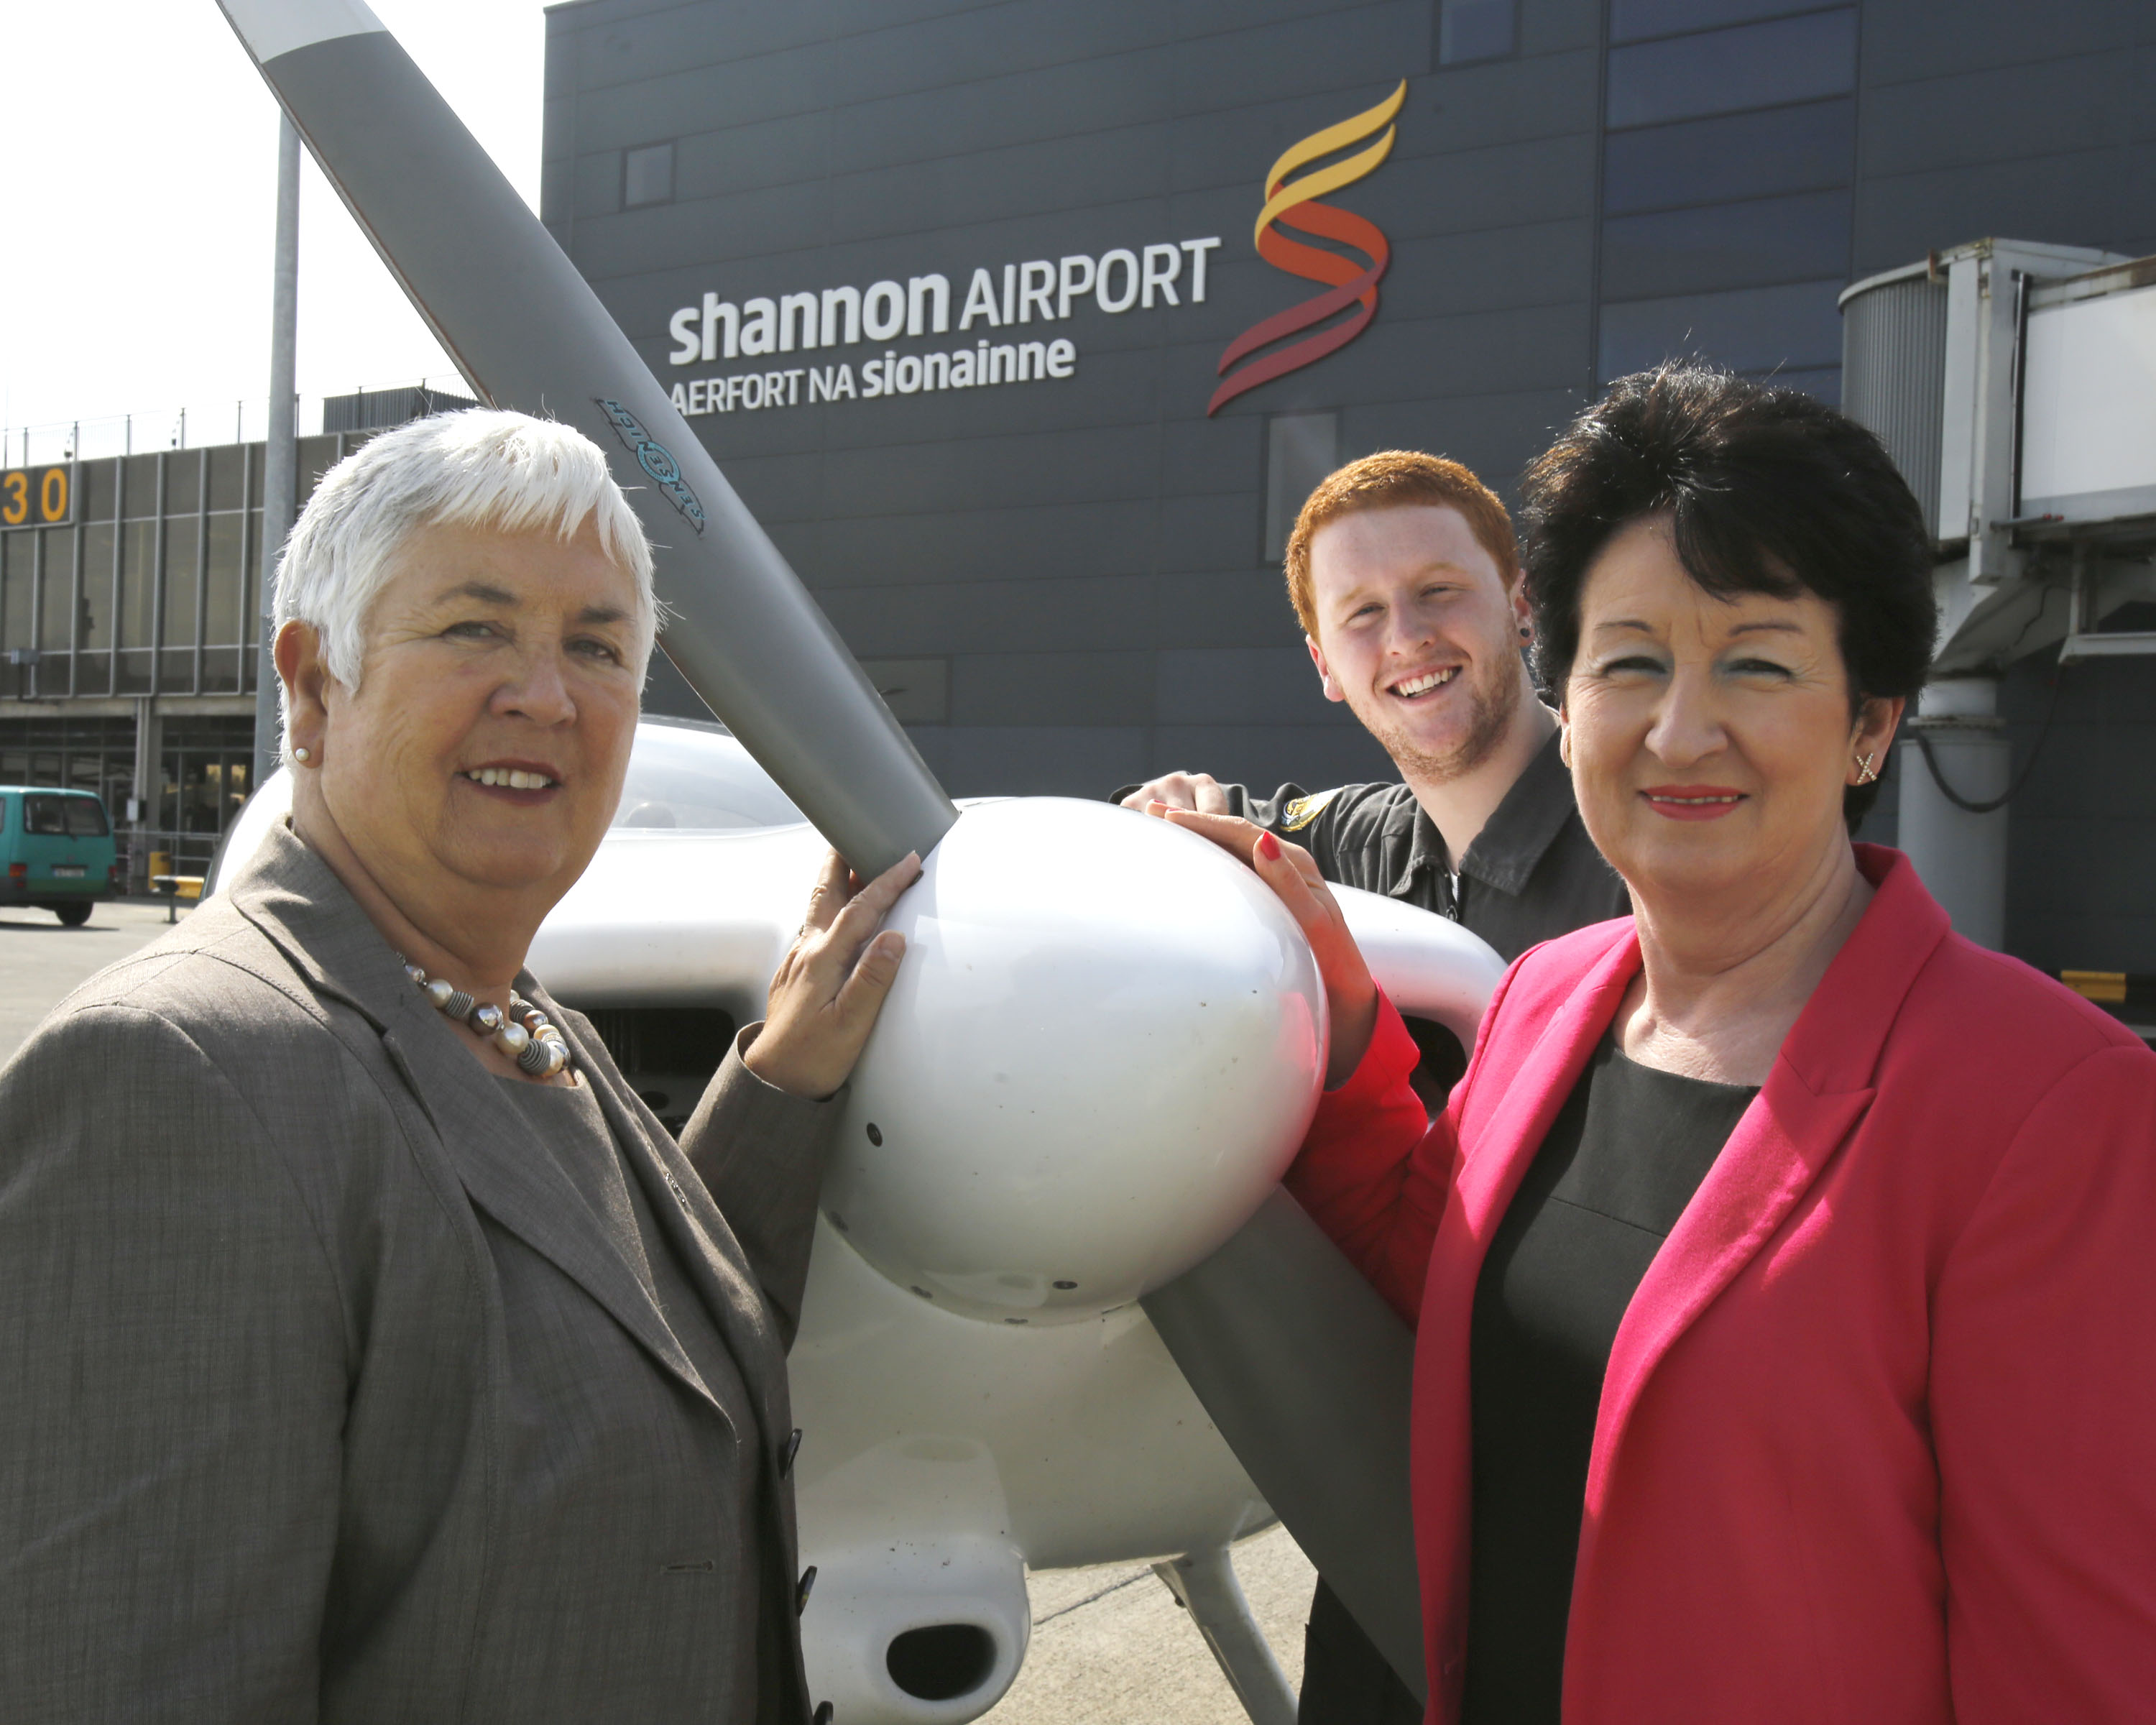 Museum Director Margaret O'Shaughnessy and Shannon Airport Chairman Rose Hynes Pictured with Harry Humphreys, Pilot. Photo Press 22